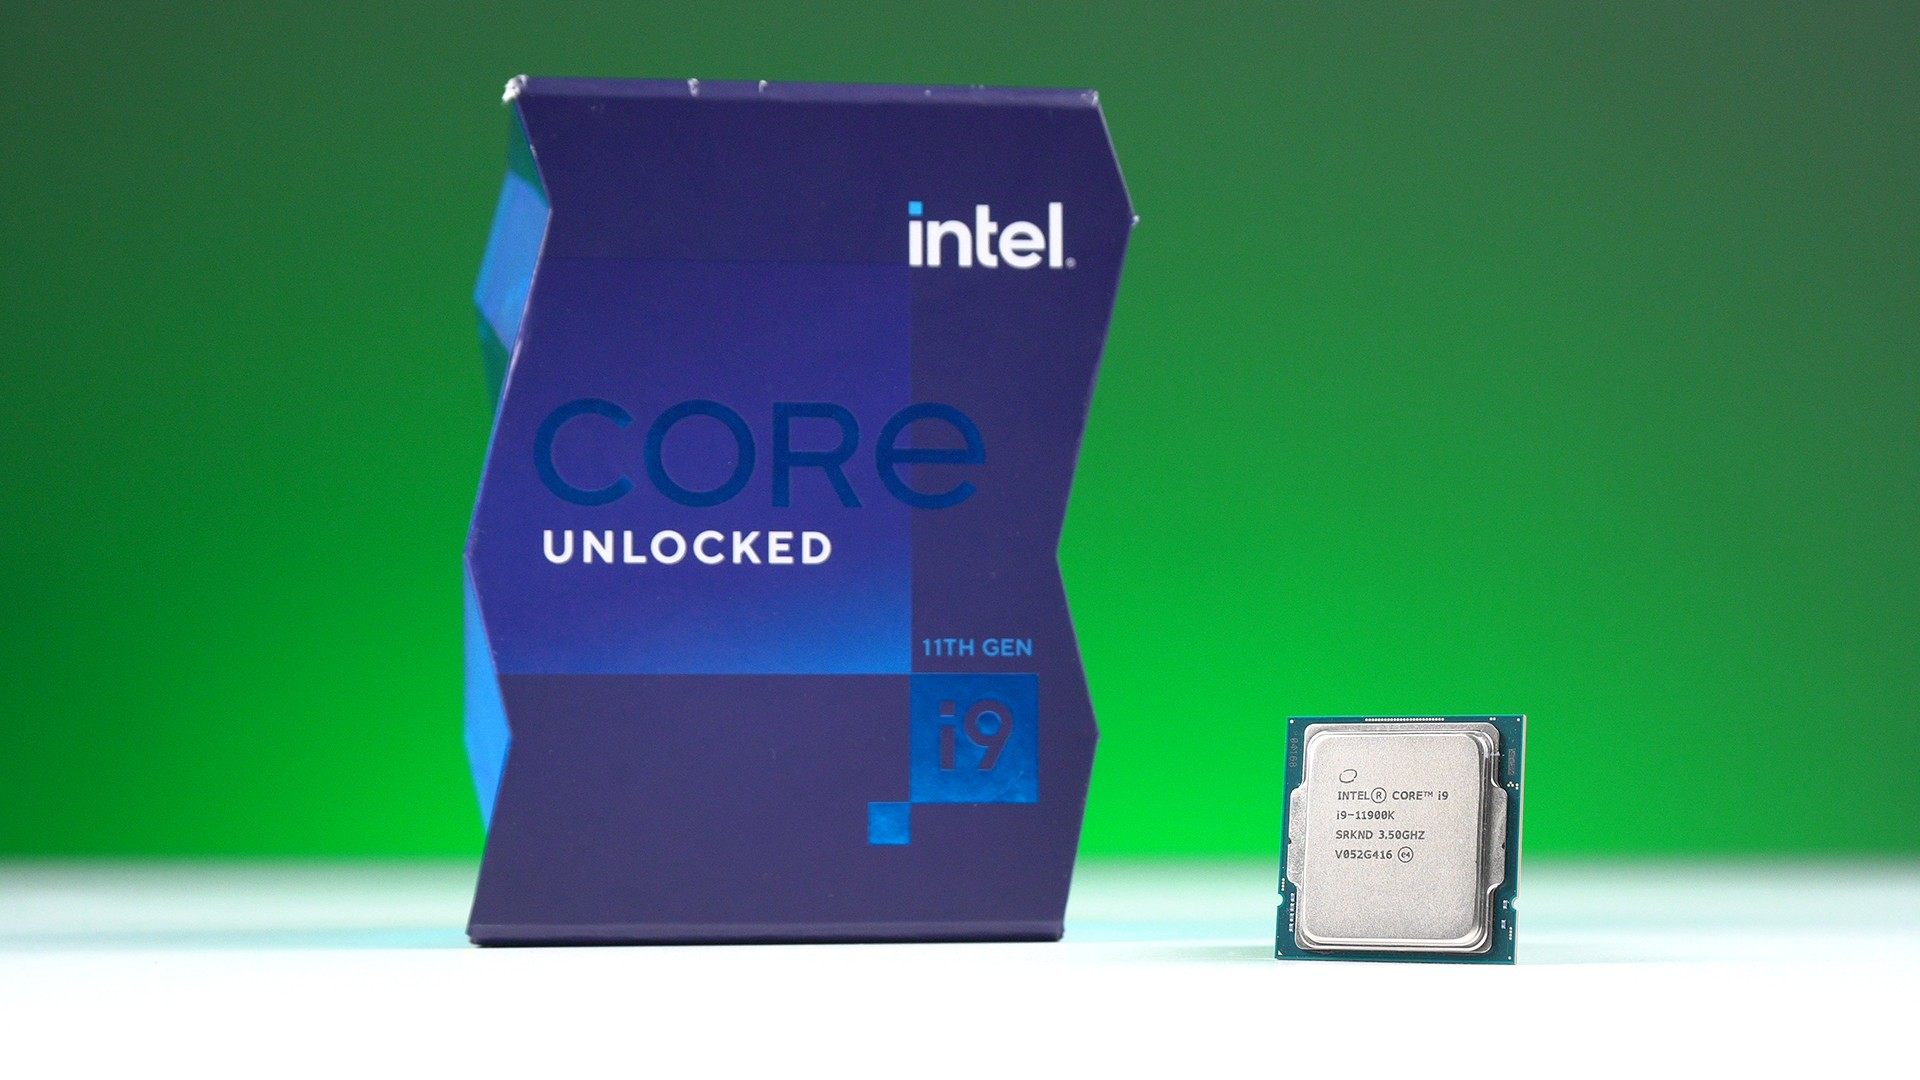 cpu-intel-core-i9-11900k-8-nhan-16-luong-350-ghz-turbo-53ghz-16m-cache-125w